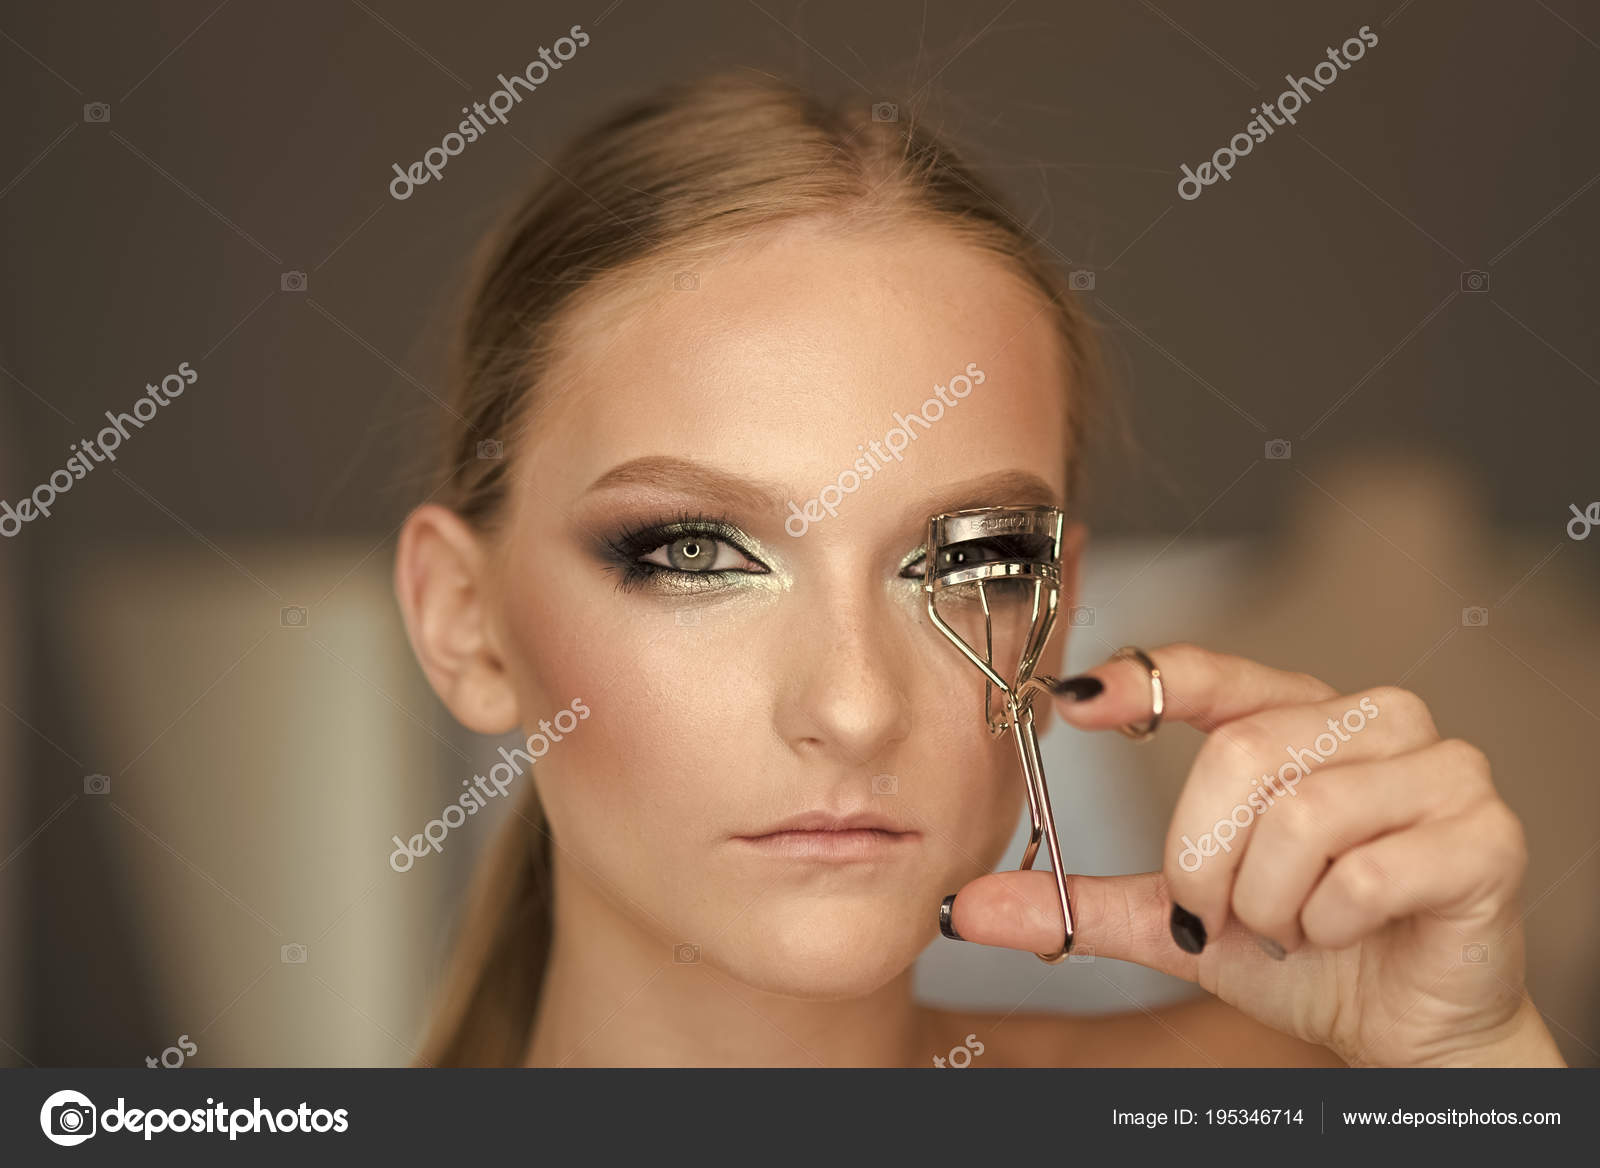 Woman Use Eyelash Curler For Eye Makeup Woman Curl Lashes With